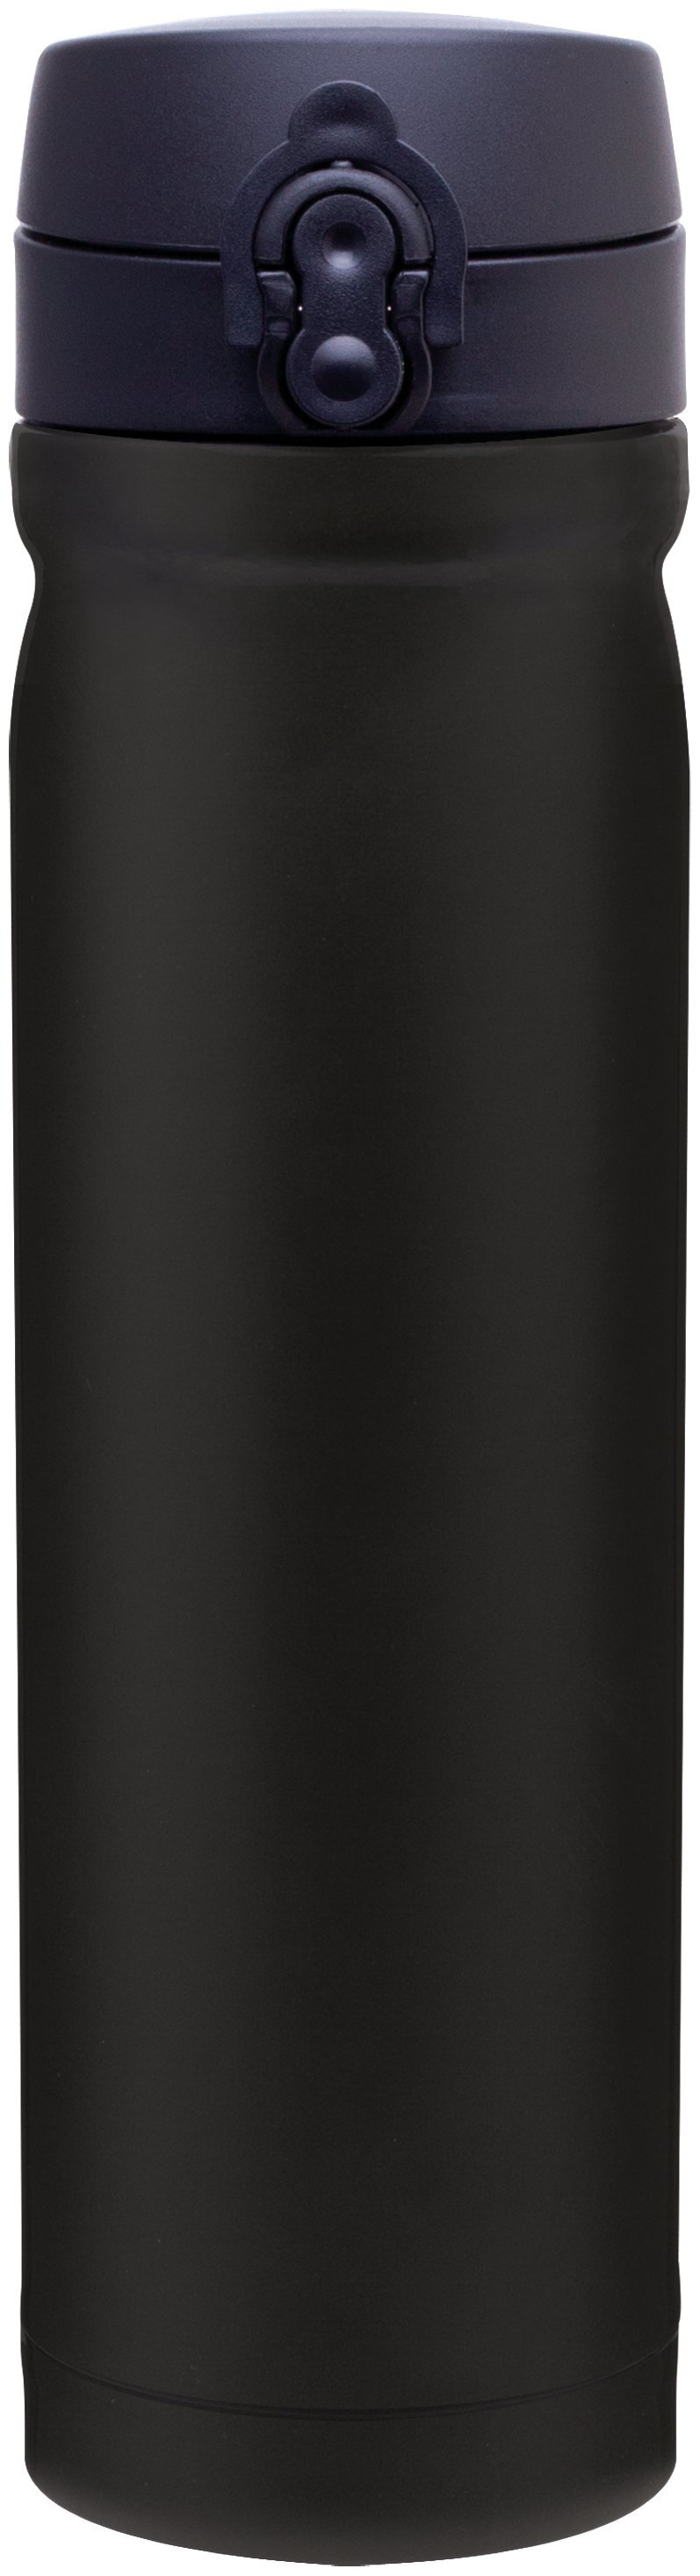 Vista Stainless Steel Bottle, 15oz., BPA Free